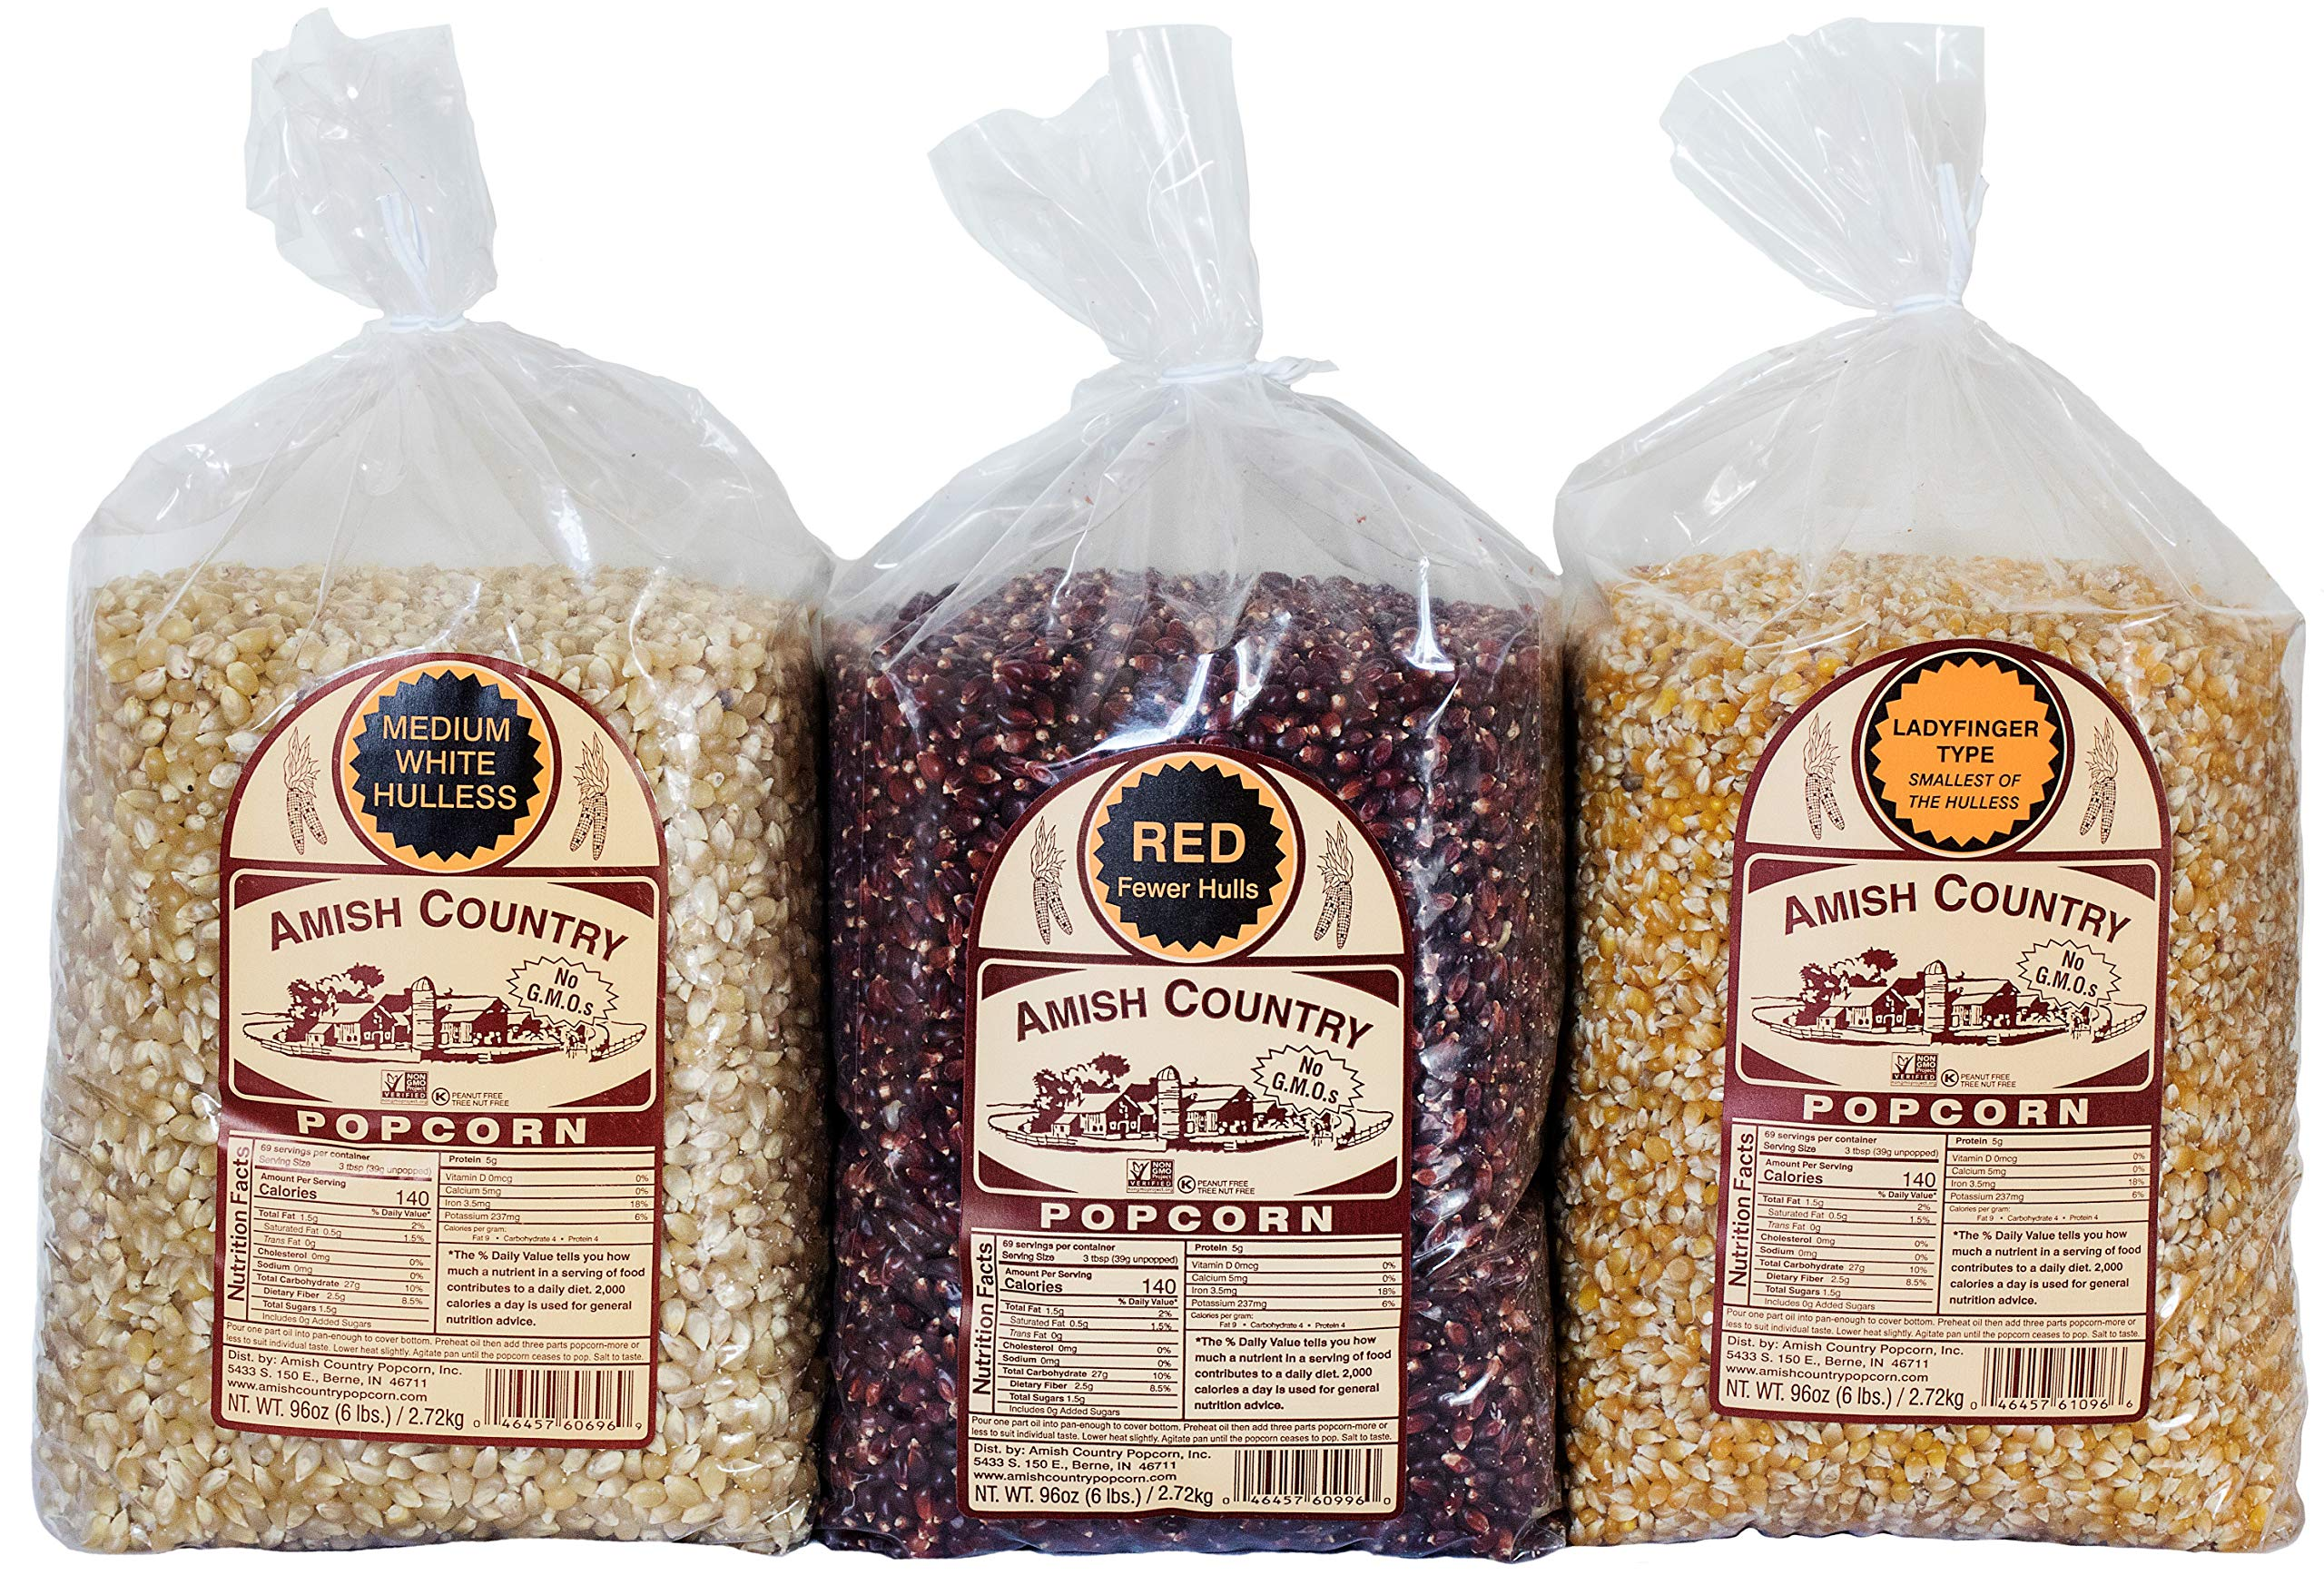 Amish Country Popcorn - 3 (6 Pound Bags) Red, Ladyfinger & Medium White Kernels - With Recipe Guide - Old Fashioned, Non GMO, and Gluten Free by Amish Country Popcorn